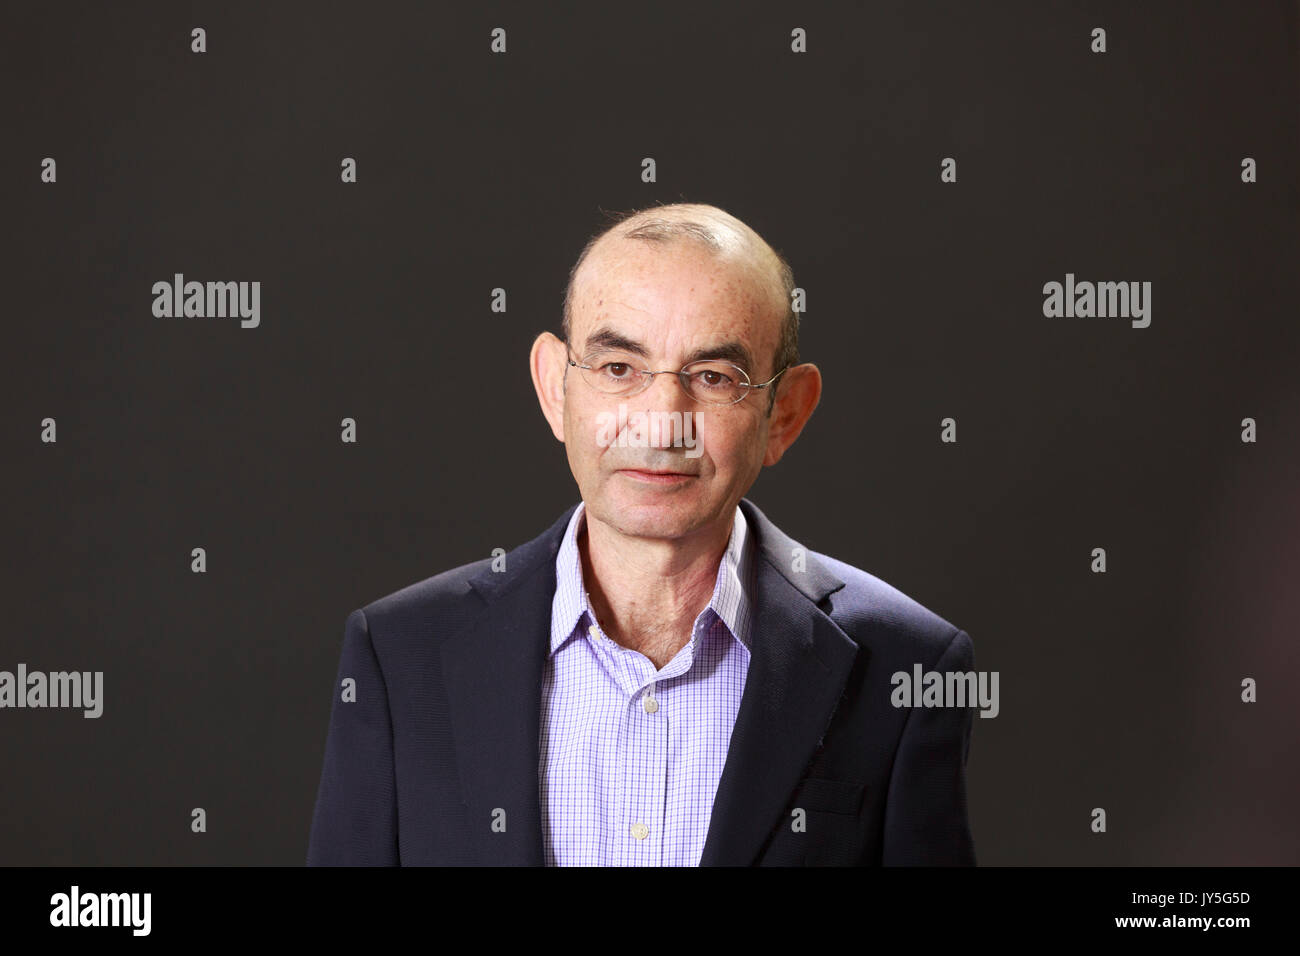 Edinburgh, Scotland 18th August. Day 7 Edinburgh International Book Festival. Pictured: Raja Shehadeh is a Palestinian lawyer and writer, who was born in Jaffa, Israel and who currently lives in Ramallah. Credit: Pako Mera/Alamy Live News - Stock Image